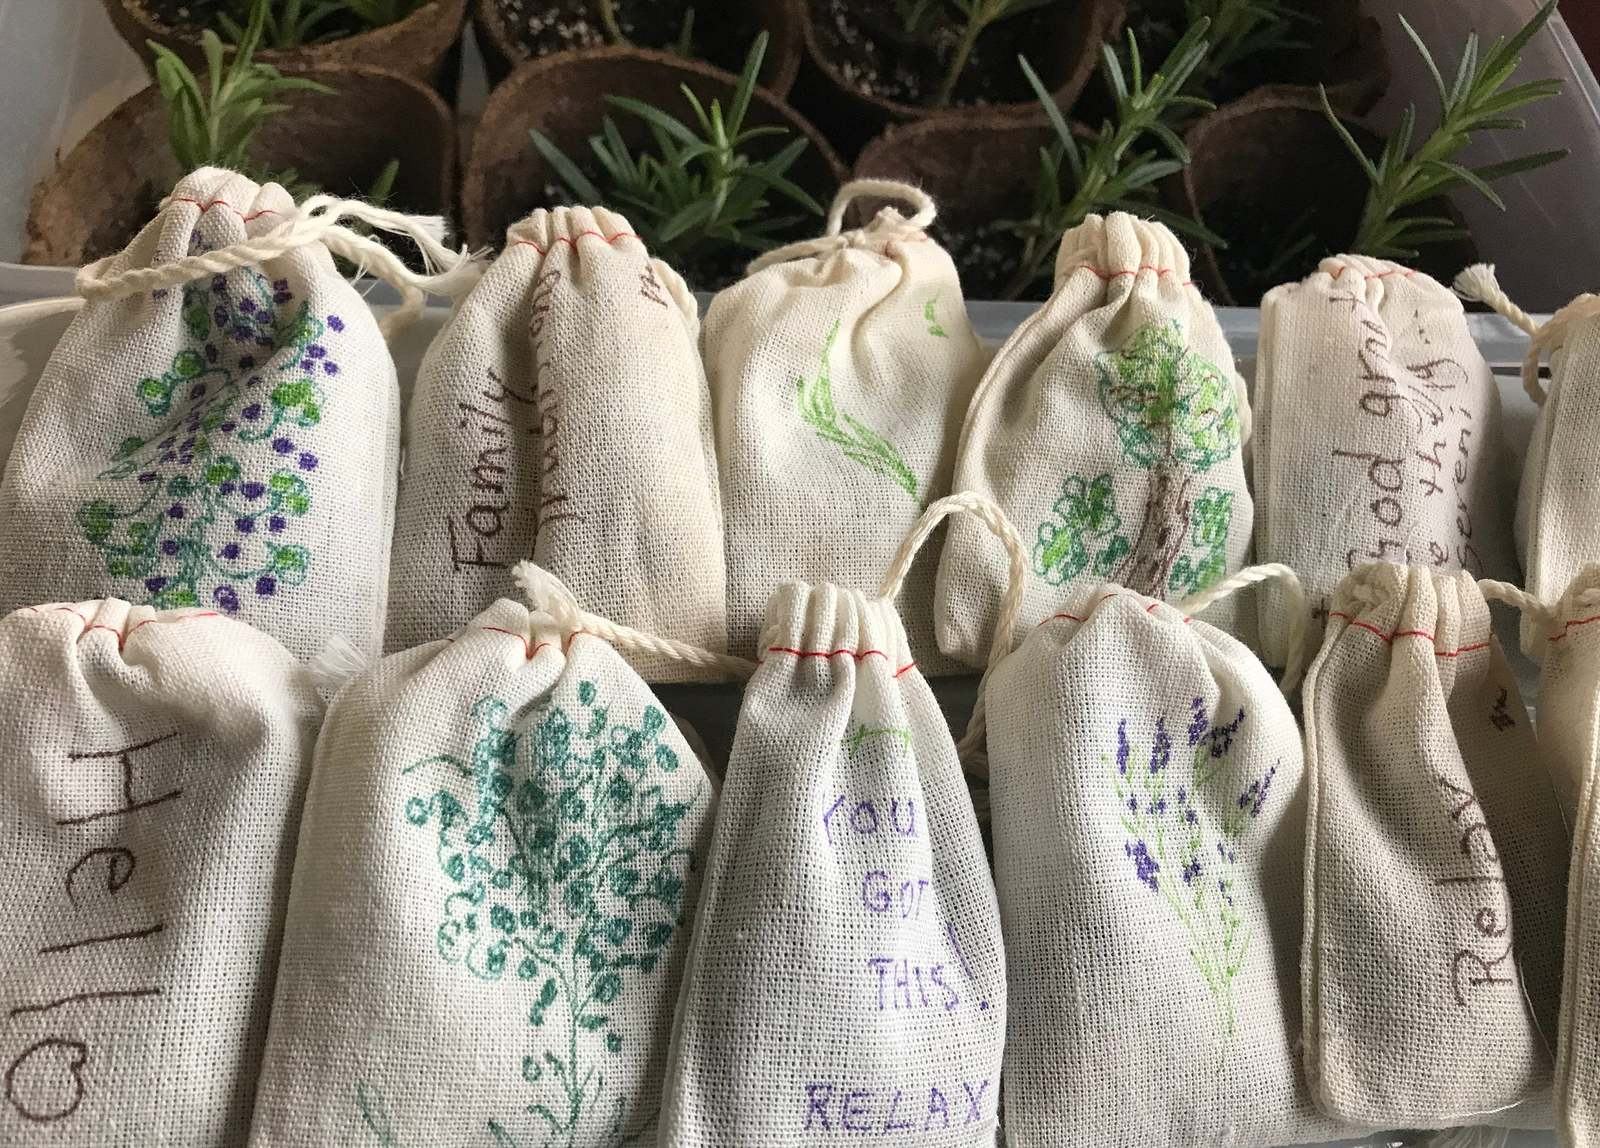 Primary image for Relaxing Lavender sachets favors or small gifts with essential oils Set of 12